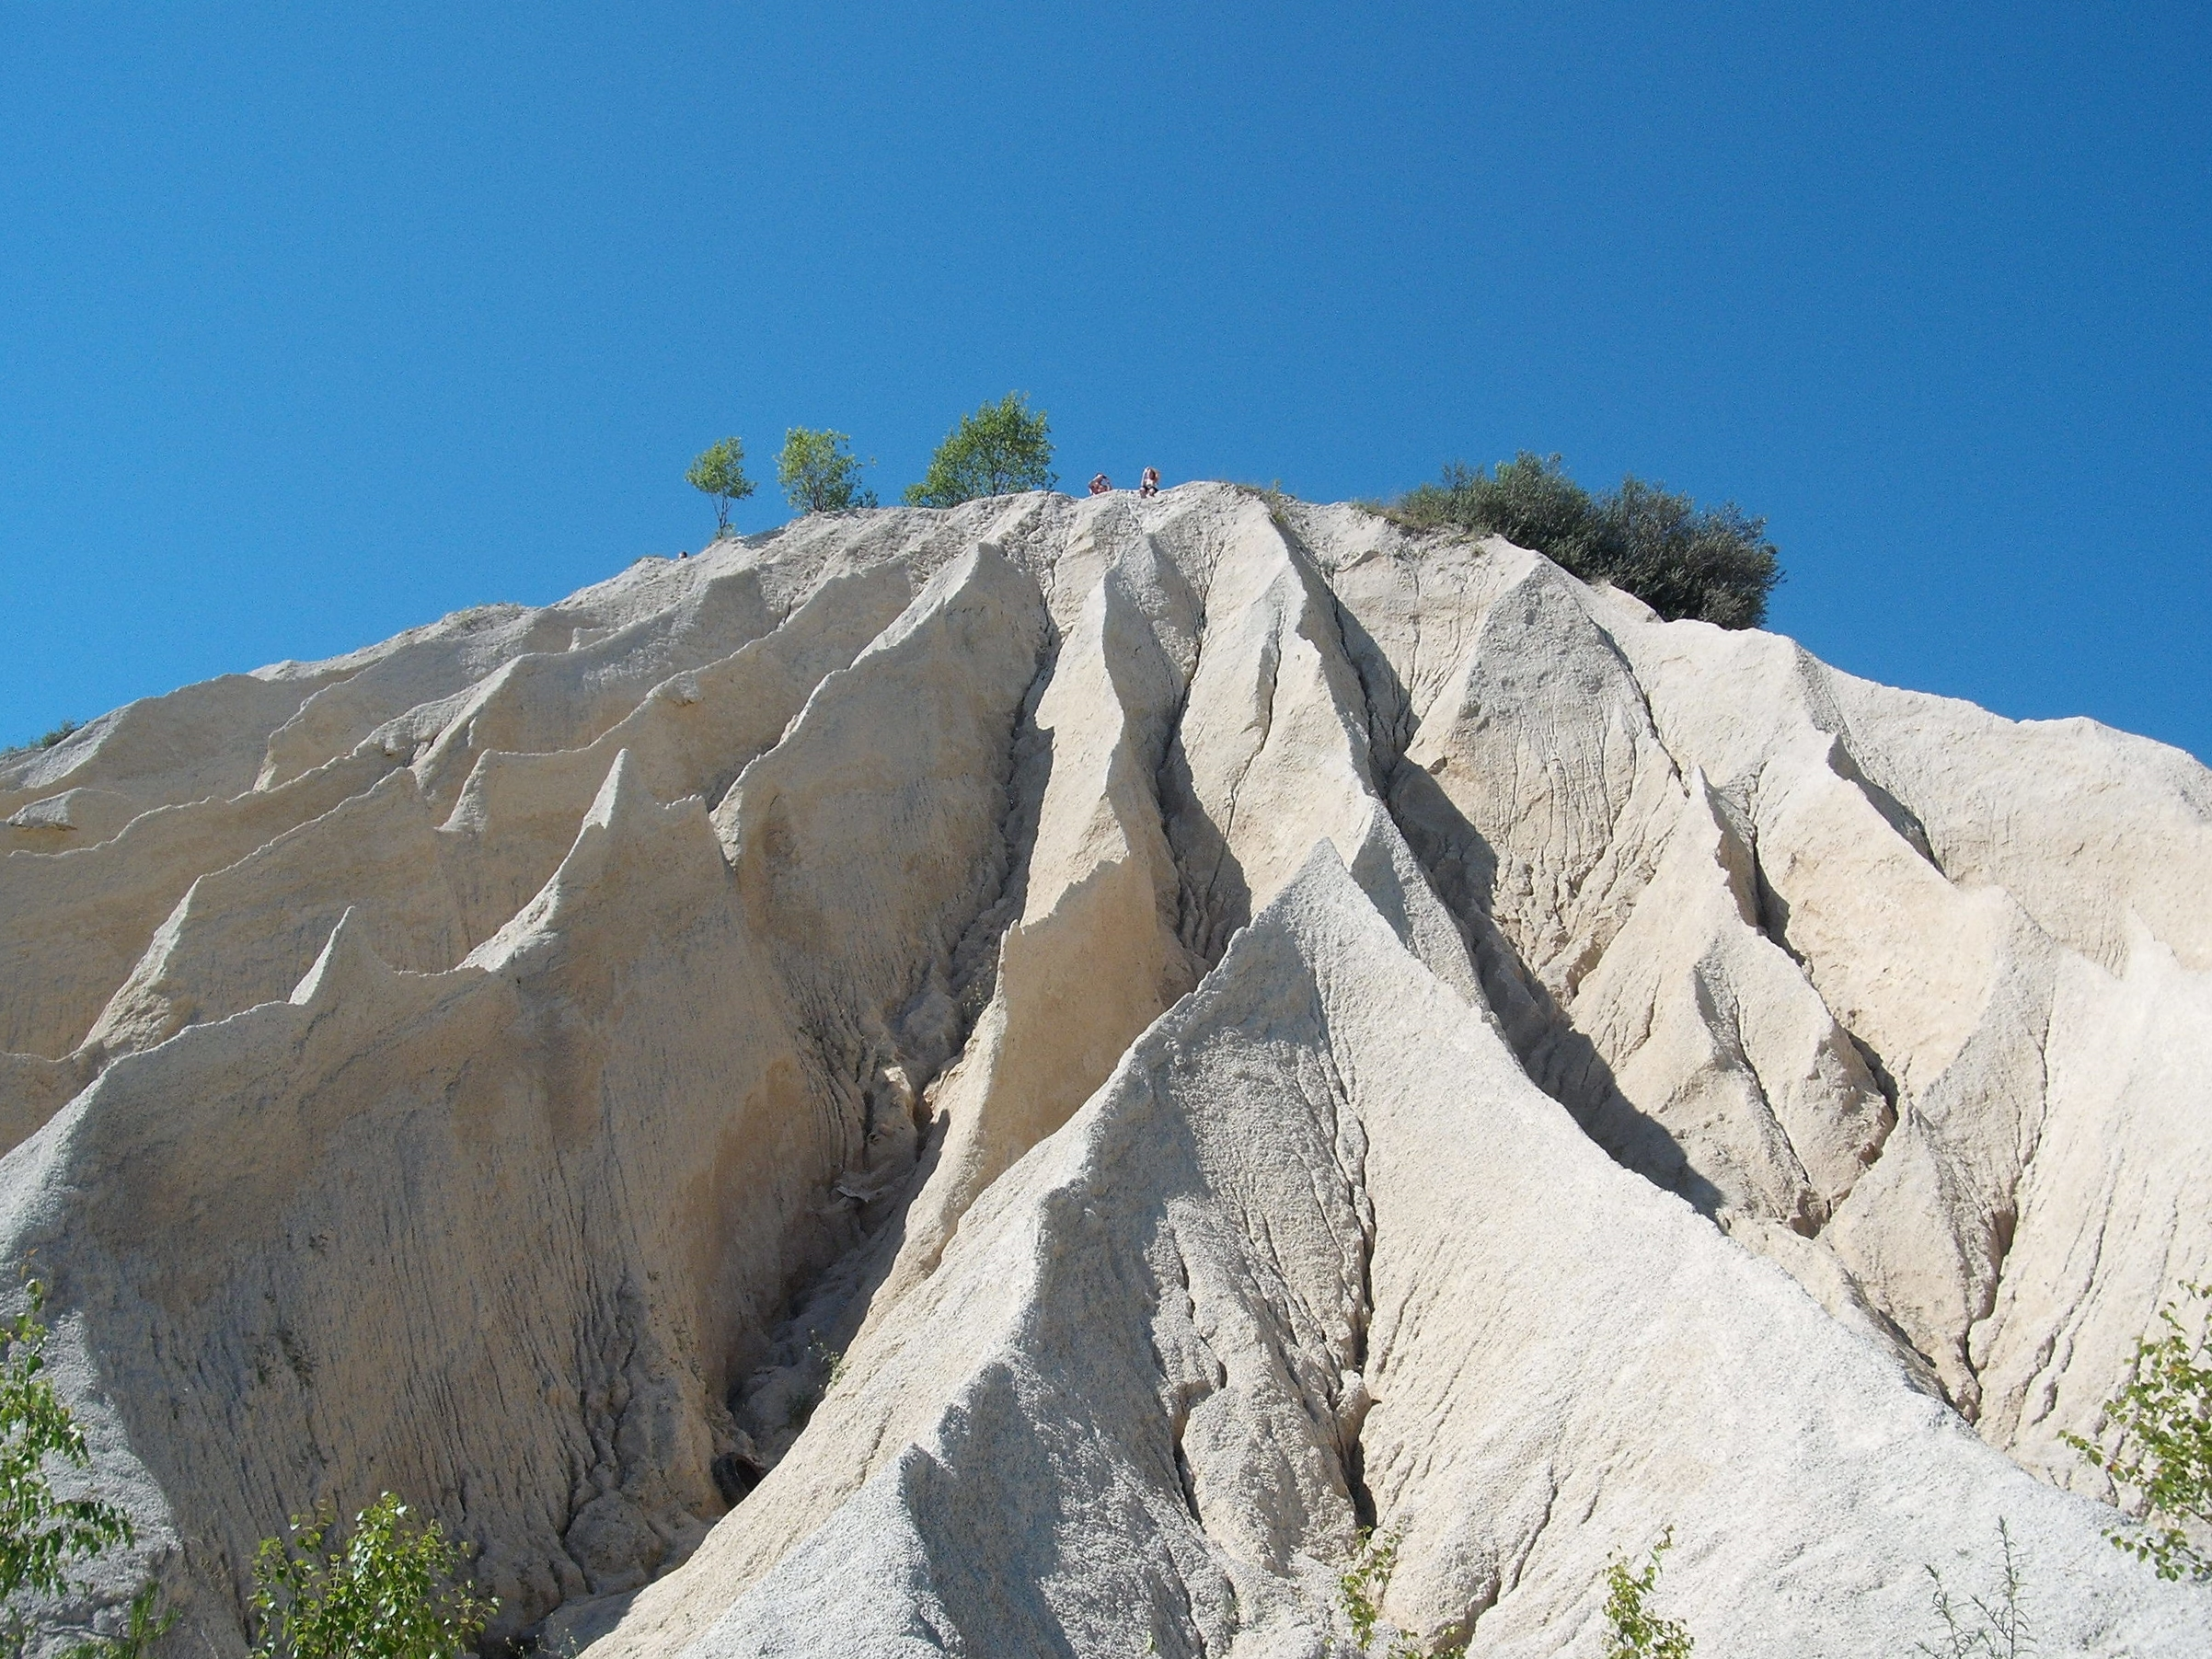 A cliff of limestone